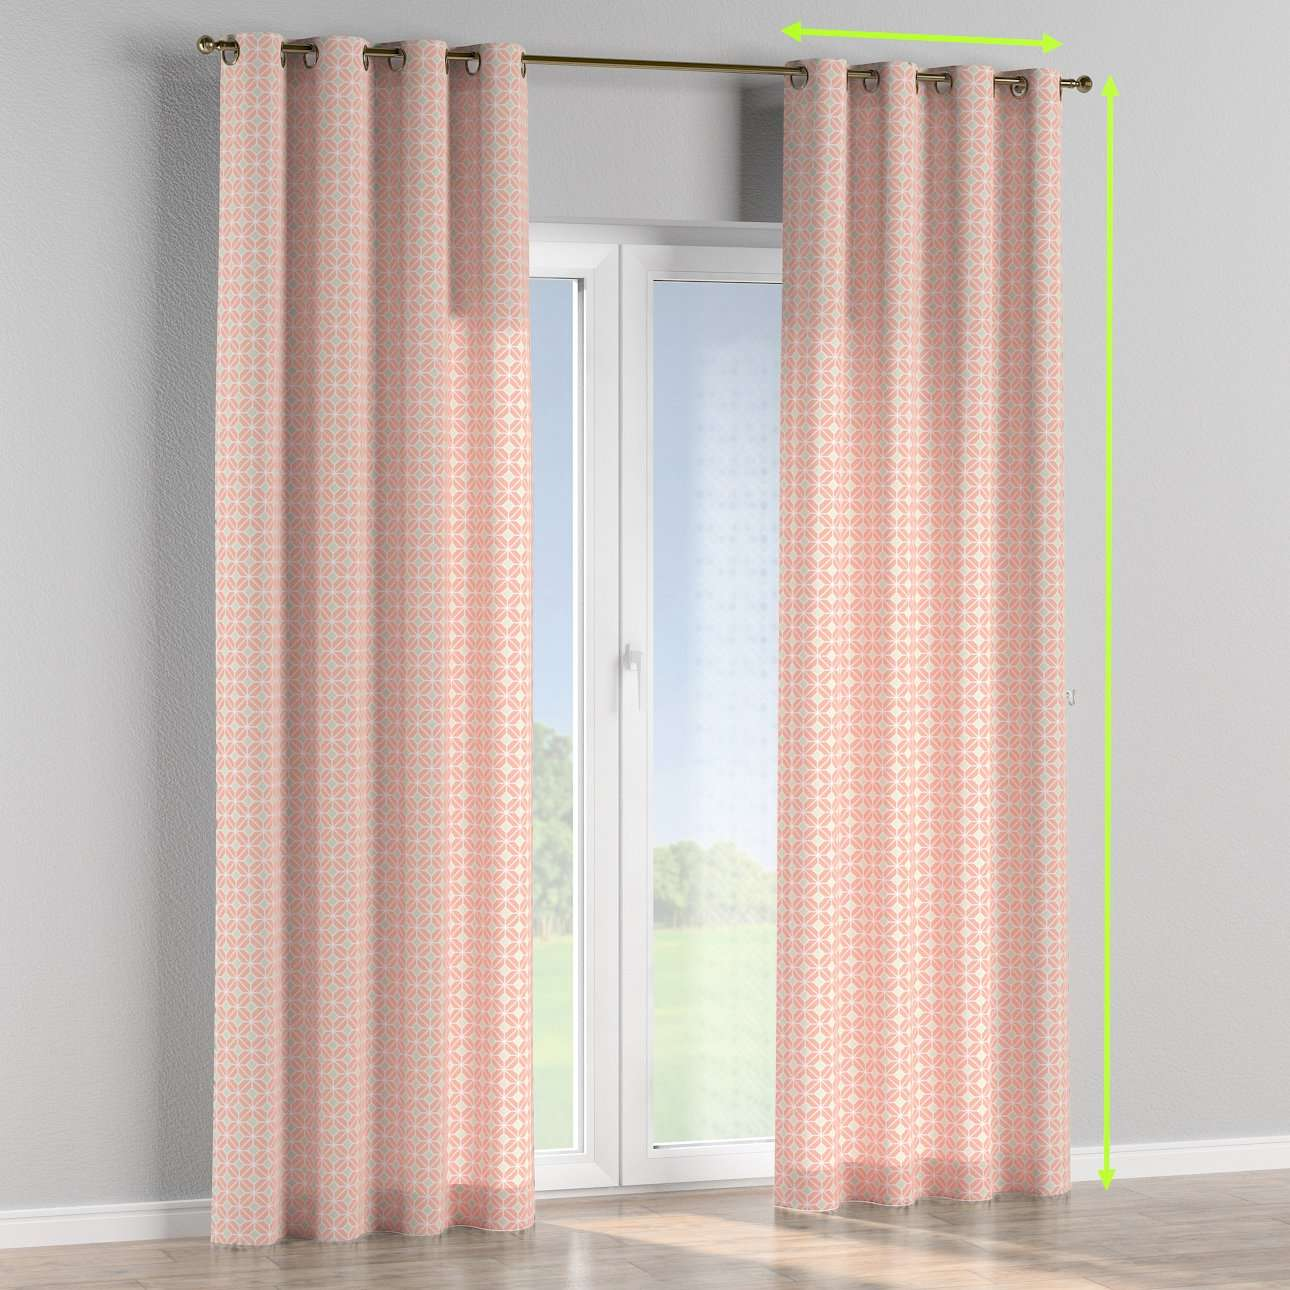 Eyelet curtains in collection Geometric, fabric: 141-48